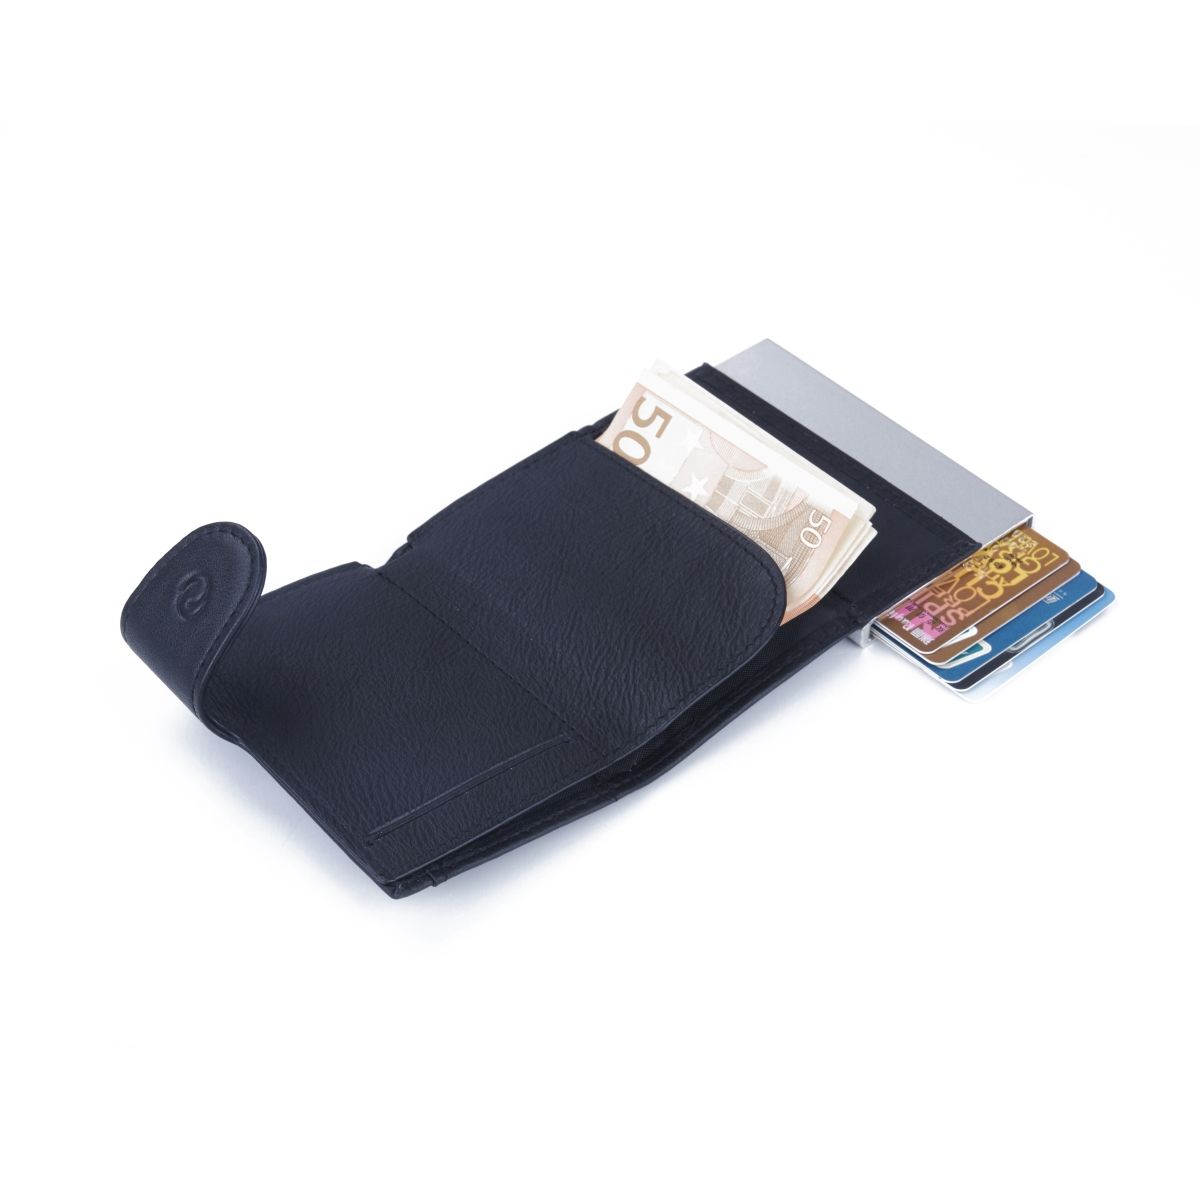 C-Secure Aluminum Card Holder with PU Leather with Coin Pouch - Black